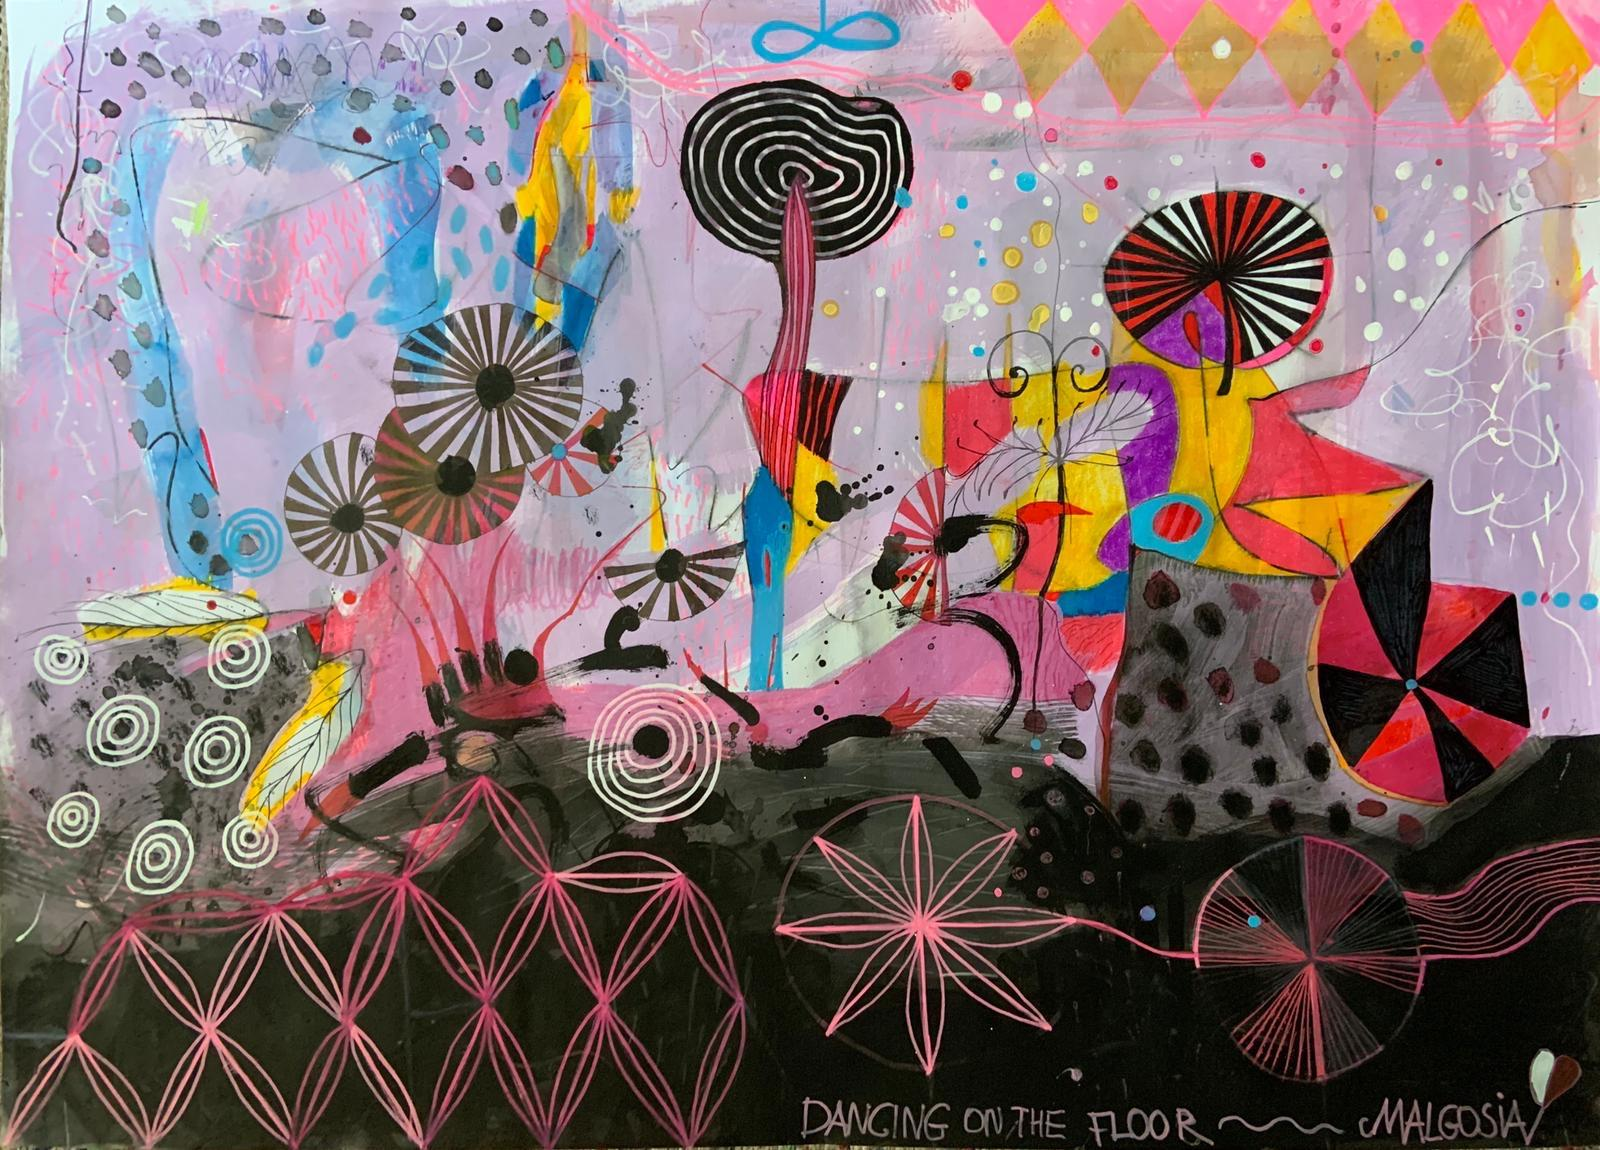 Dancing On The Floor Mixed Media on paper Abstract